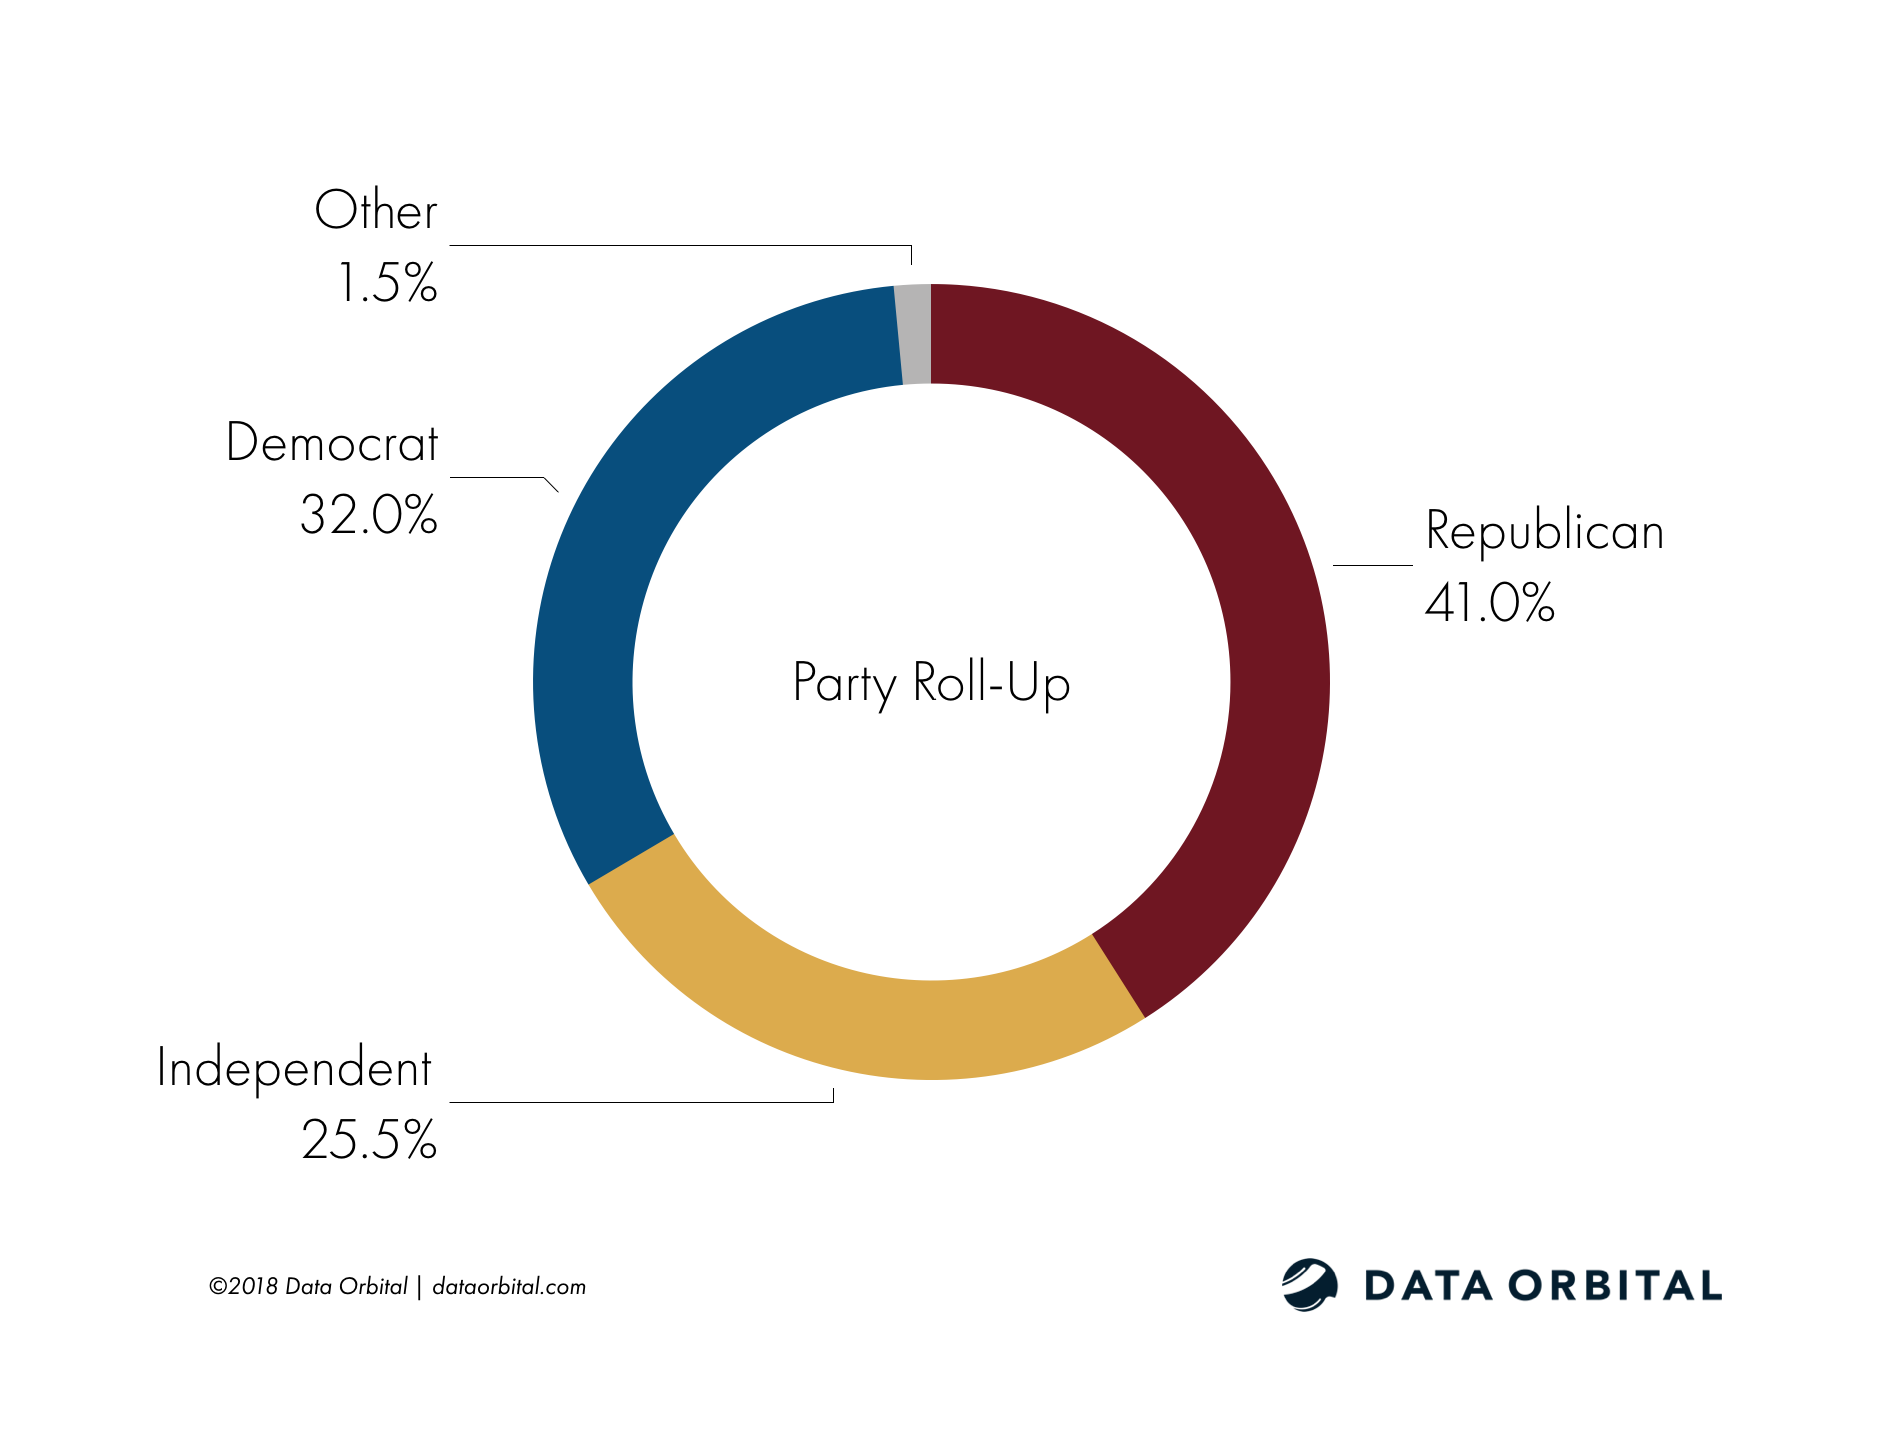 Arizona Education Poll Demographic Party Roll-Up